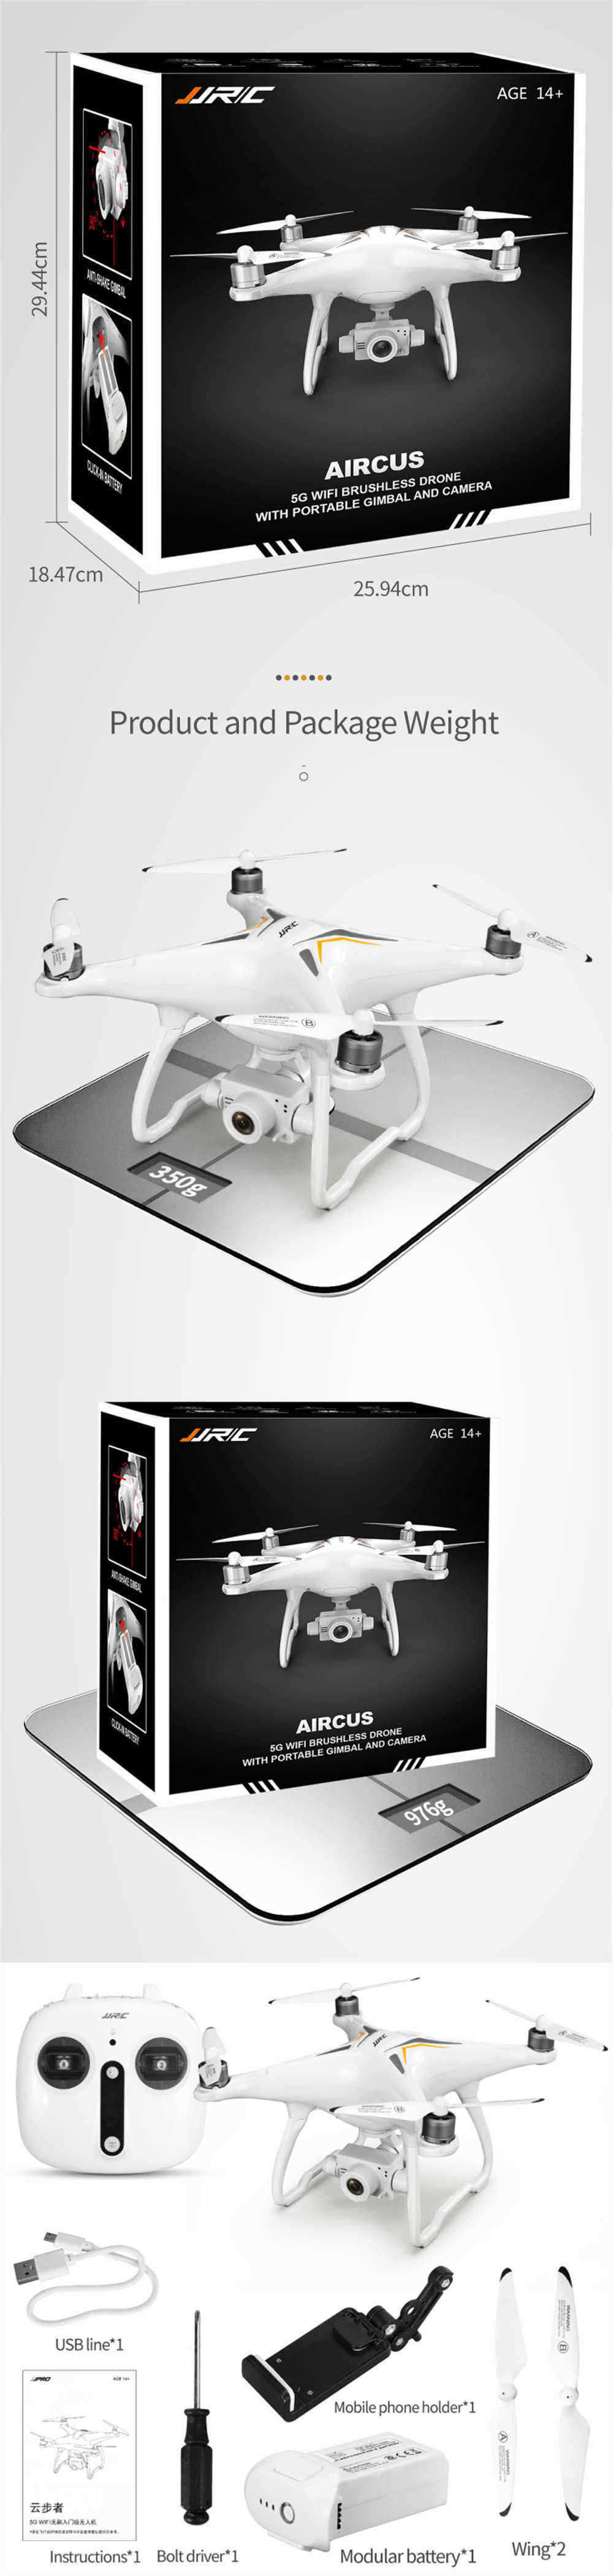 JJRC-X6-Aircus-5G-WIFI-FPV-Double-GPS-With-1080P-Wide-Angle-Camera-Two-Axis-Self-Stabilizing-Gimbal--1472966